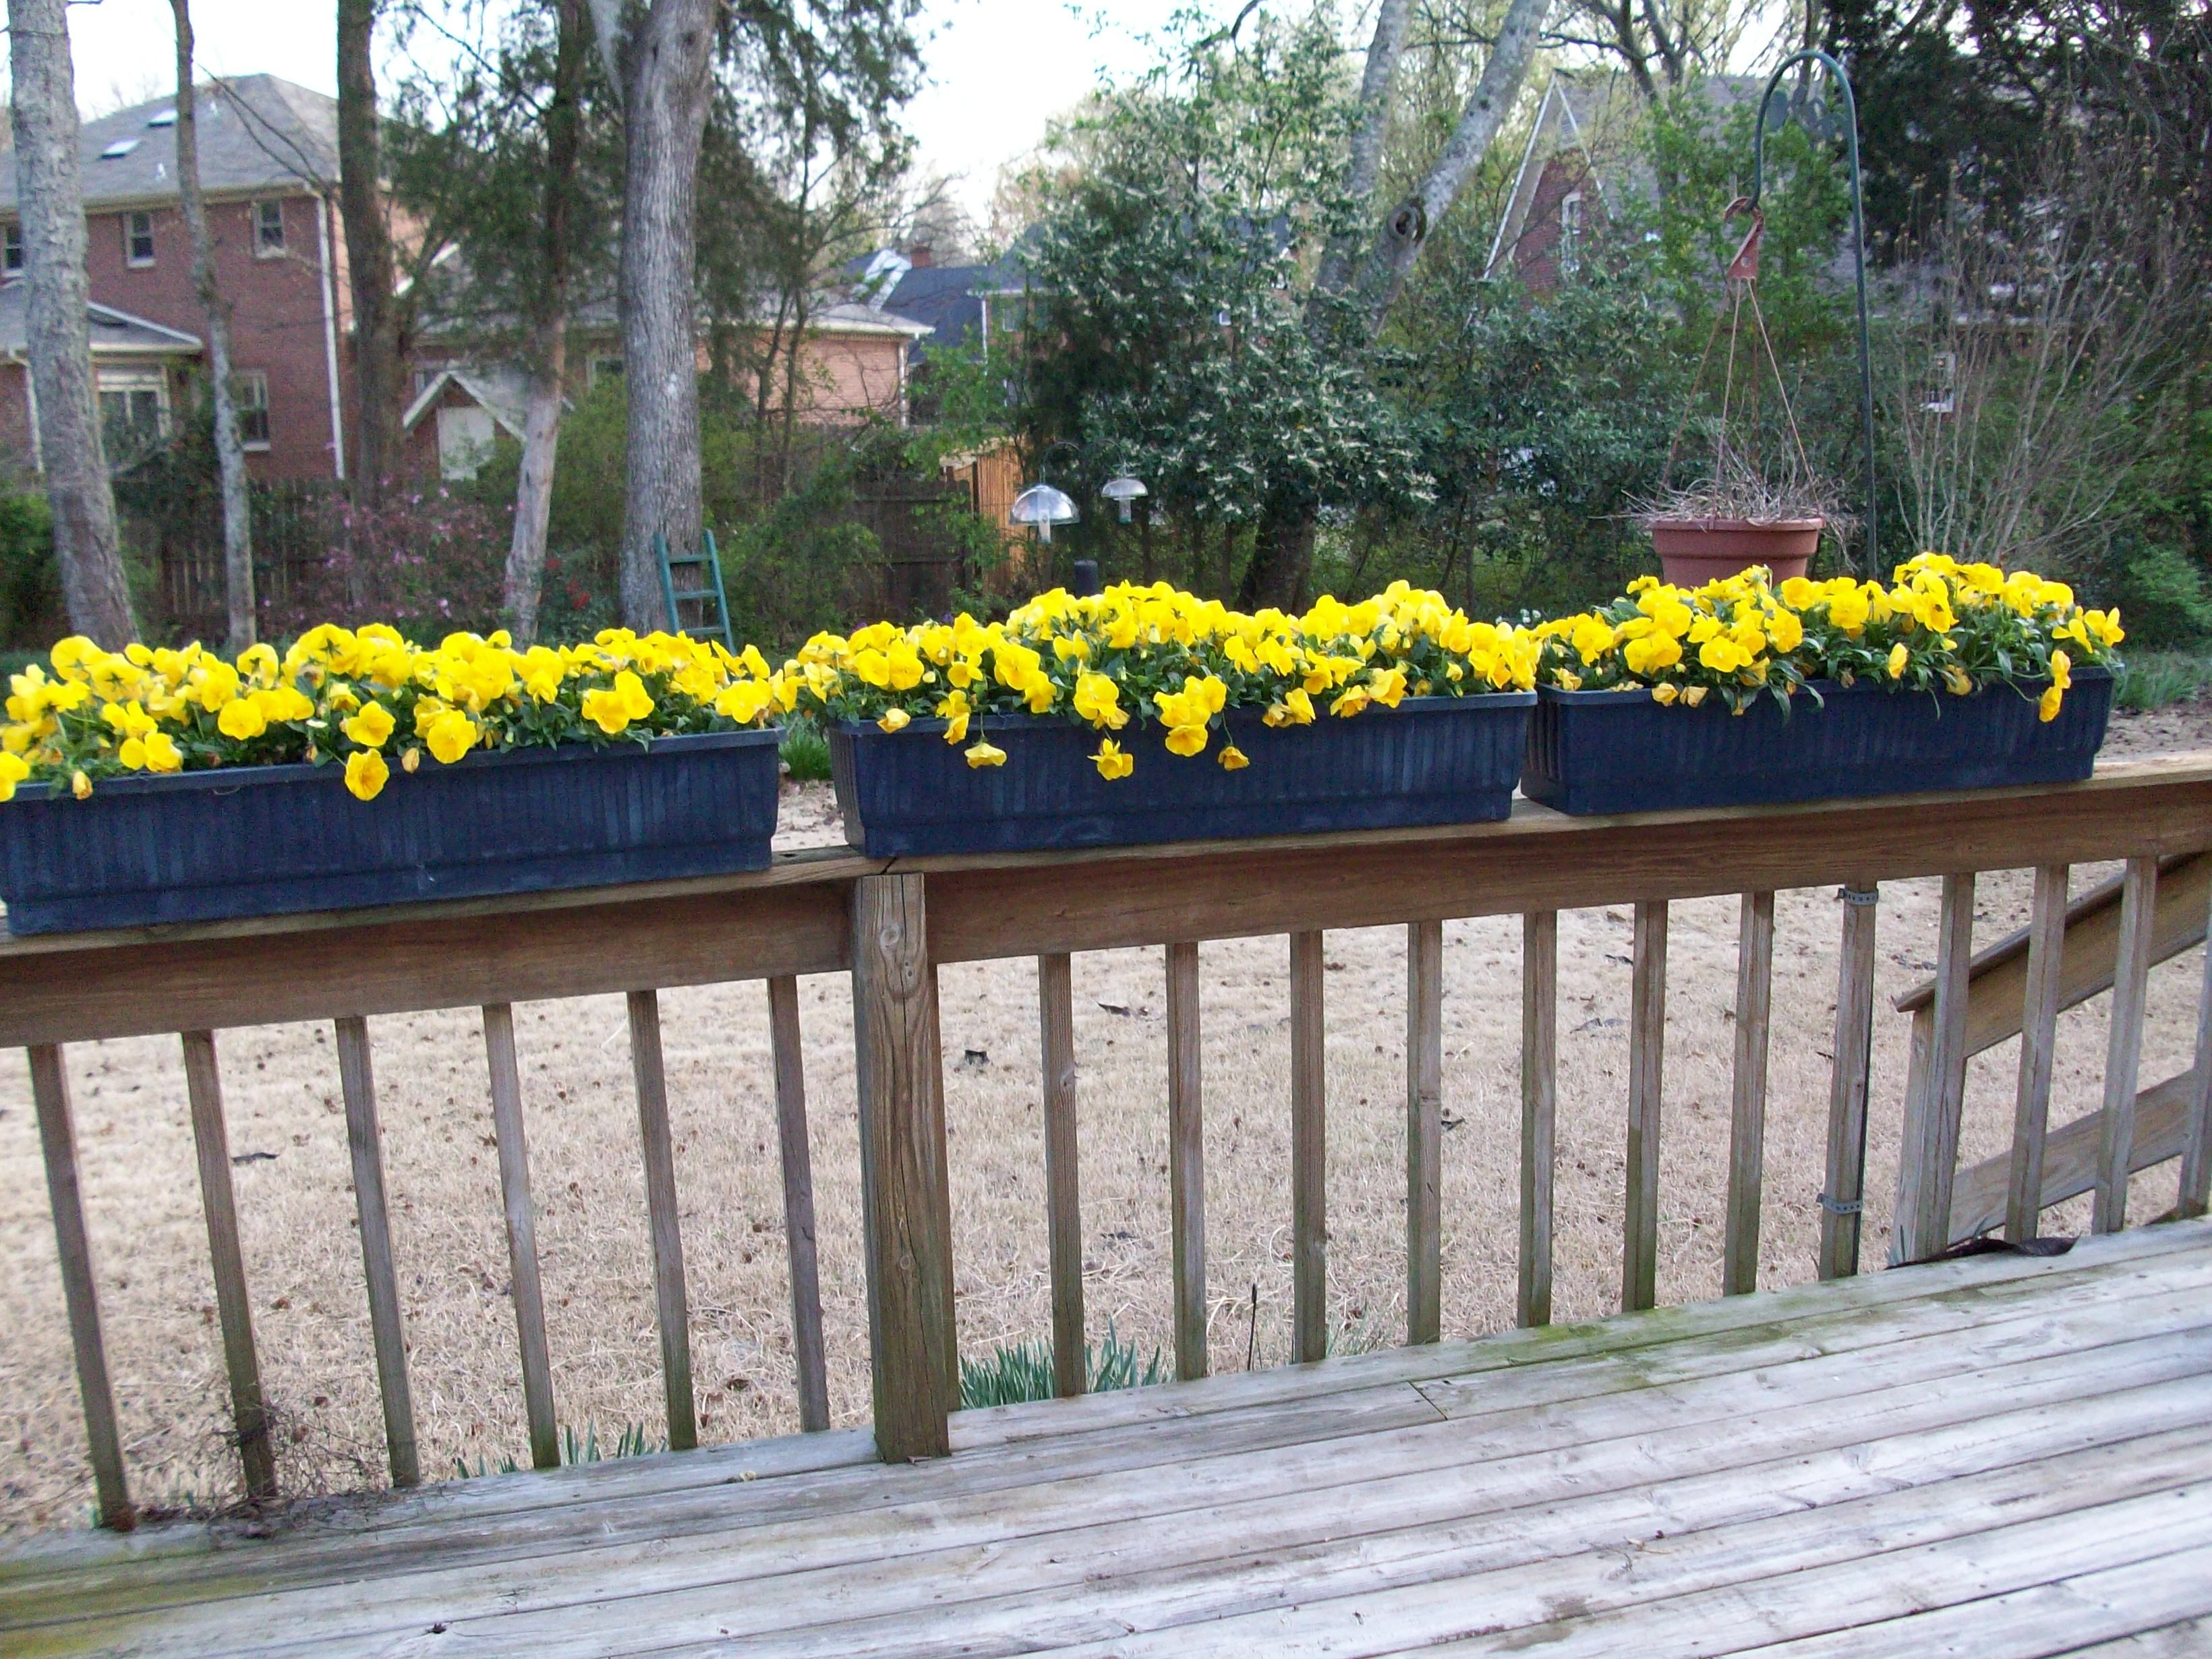 Looking out kitchen window  window boxes of pansies which i plant every winter to put on the